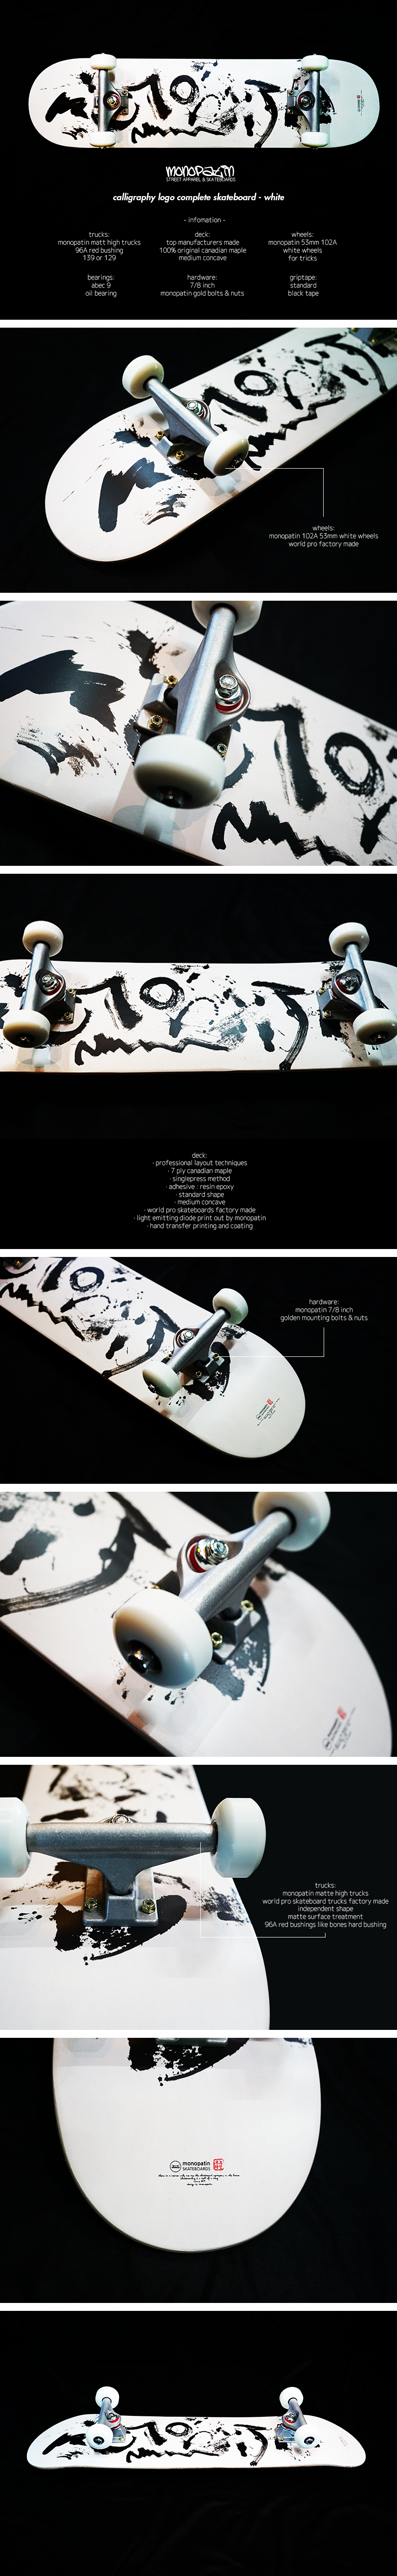 monopatin-calligraphy-logo-white-complete-skateboard.png